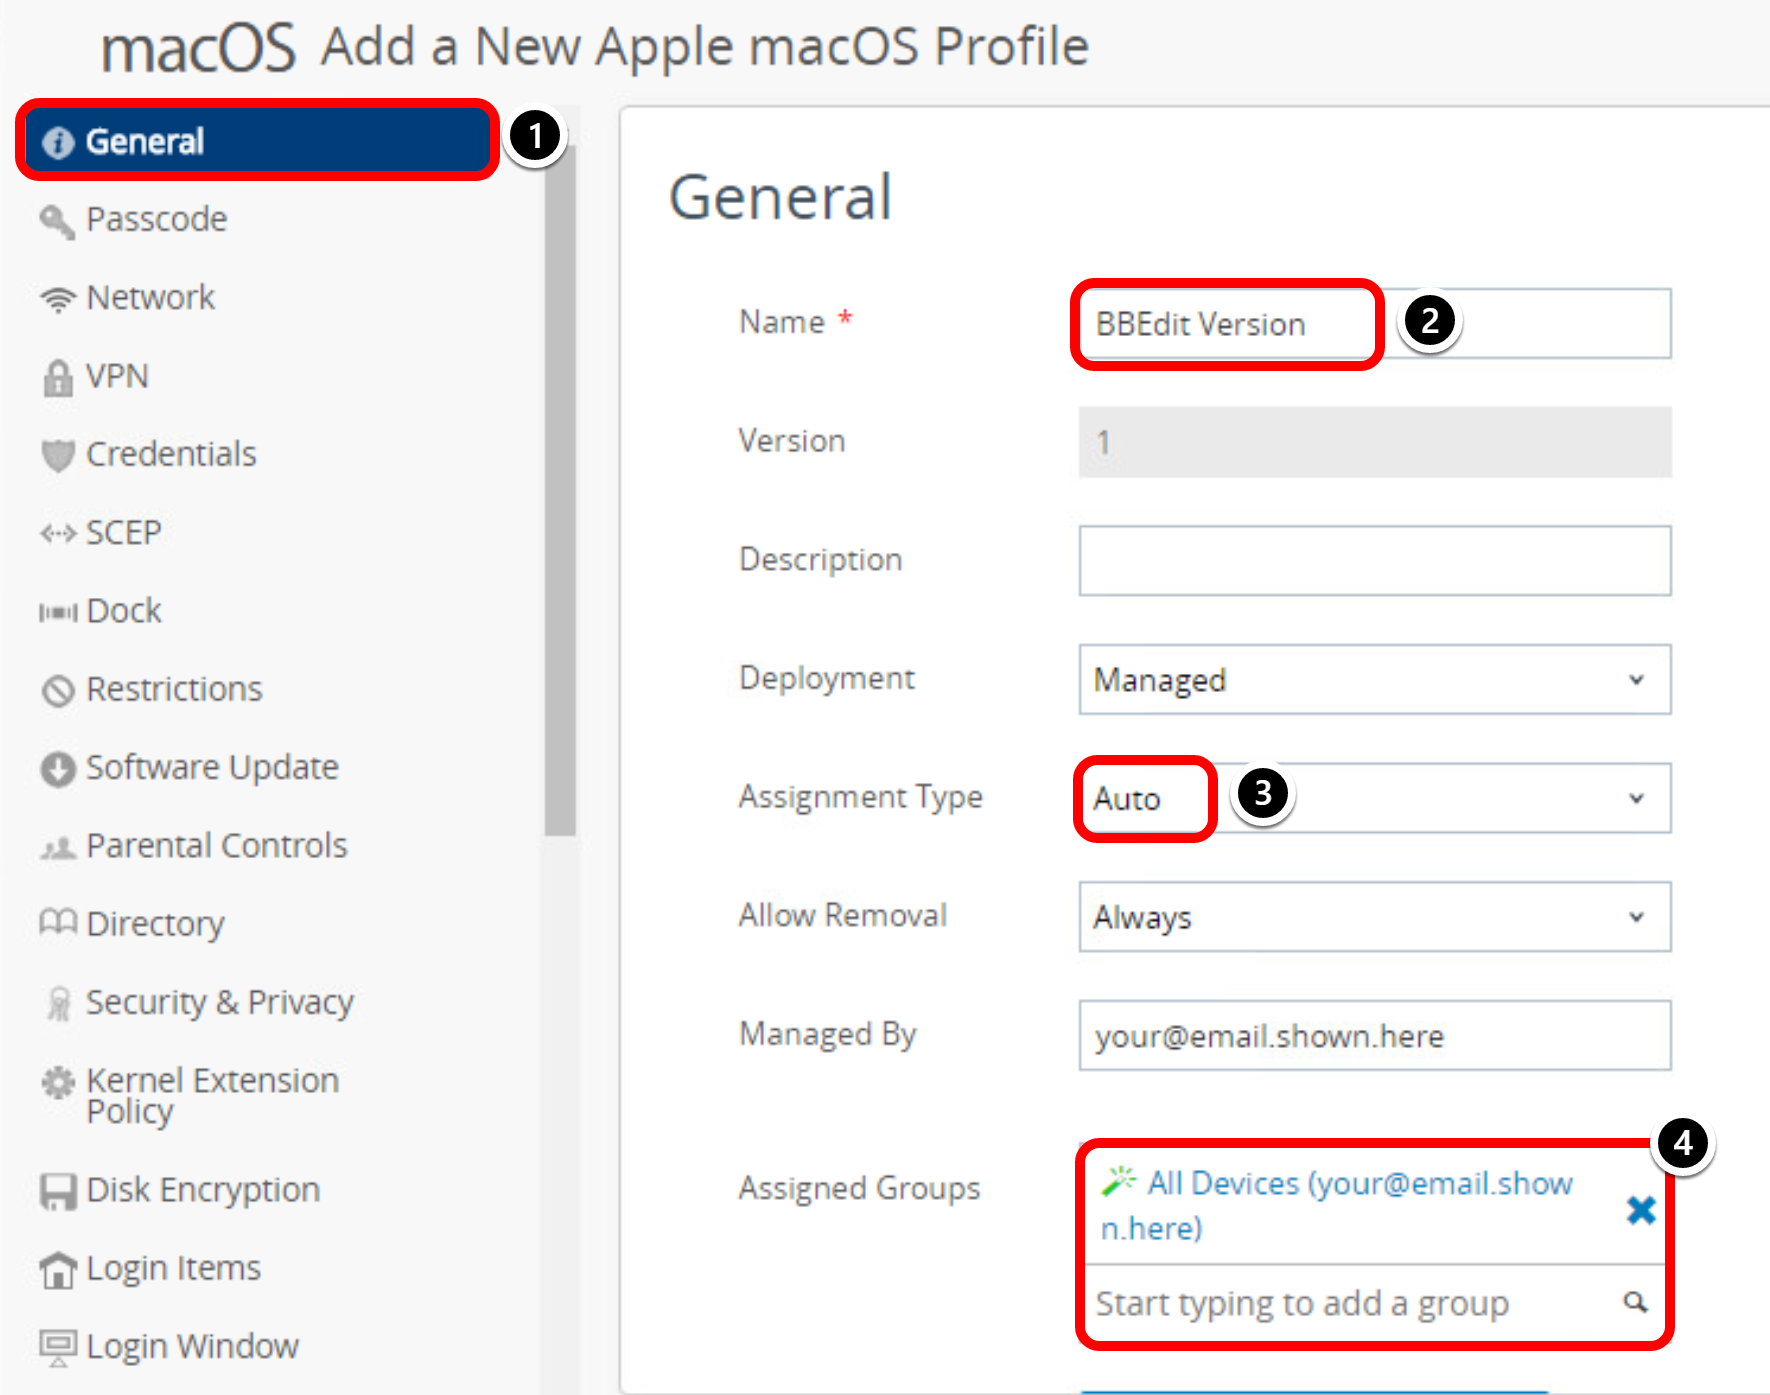 Configure General Profile Settings